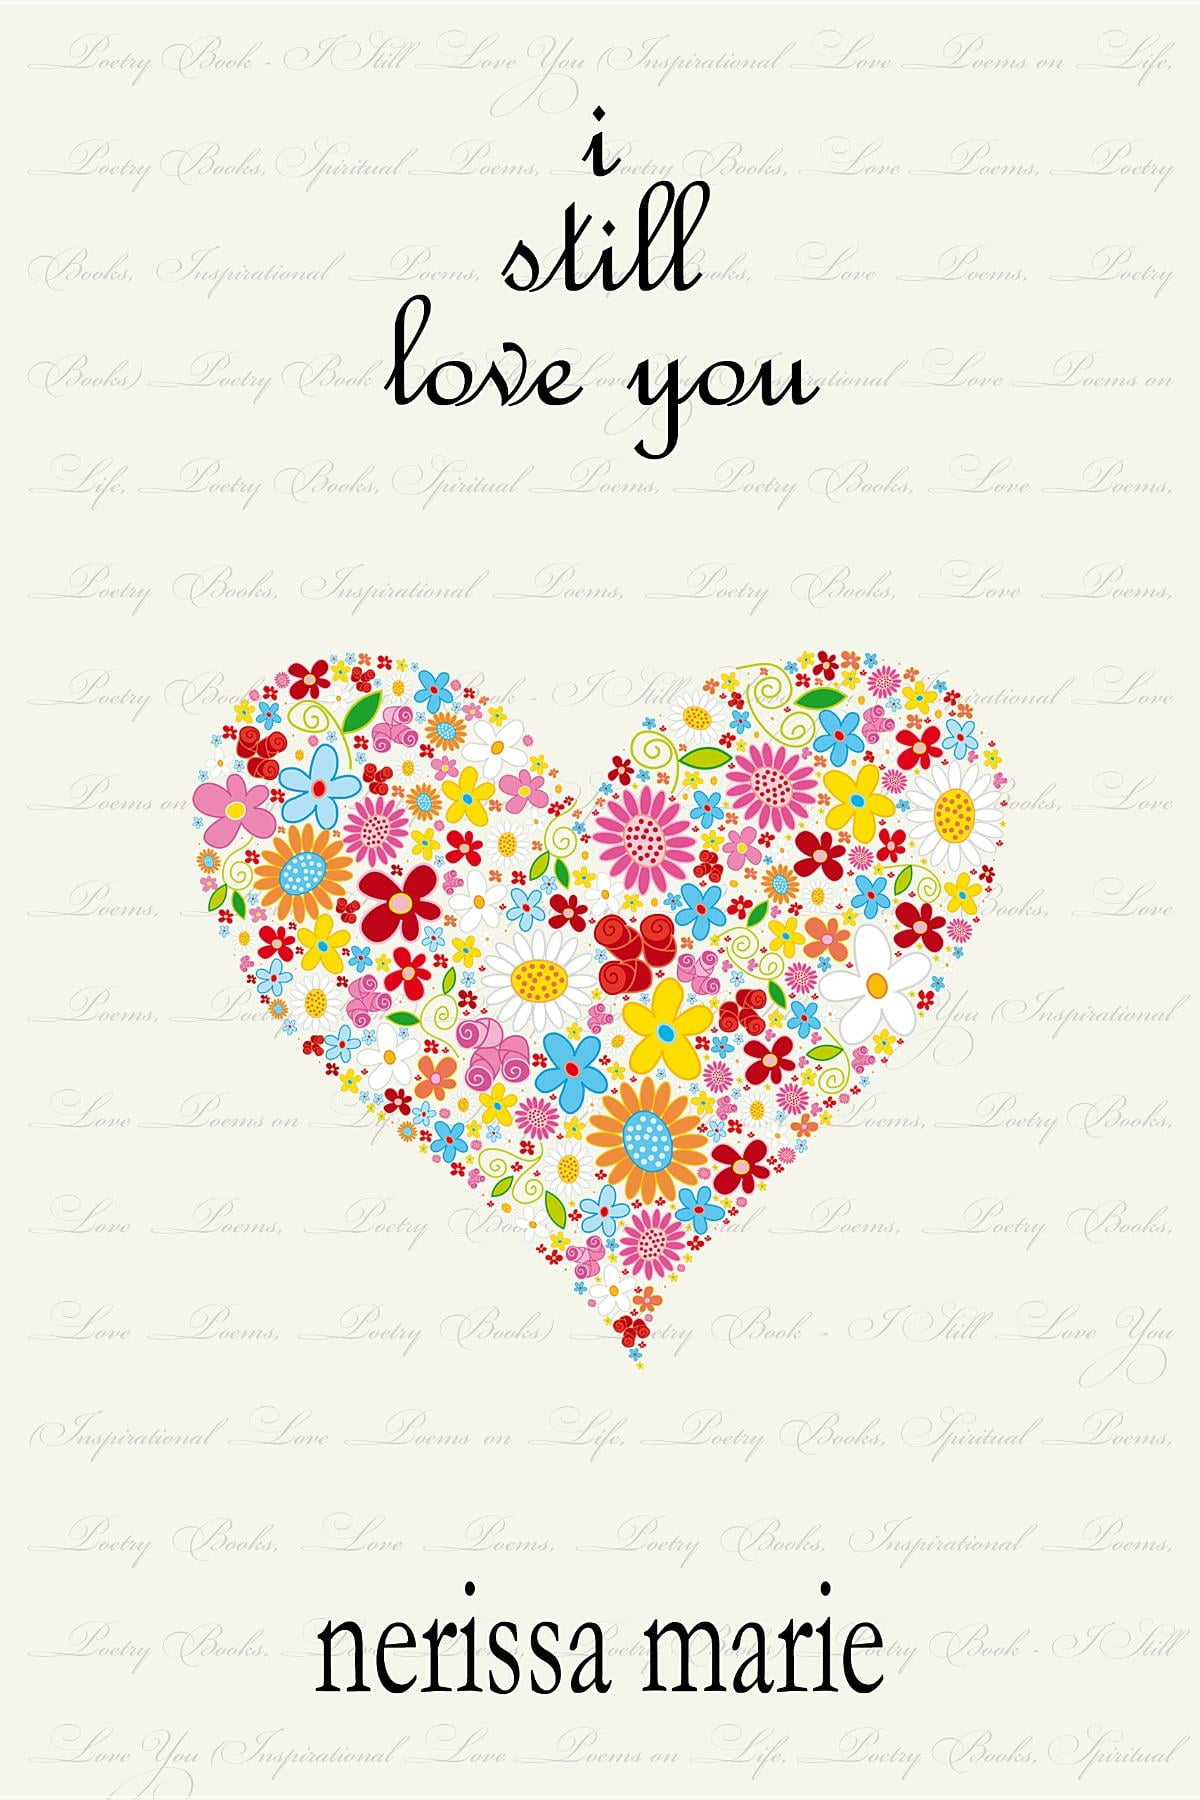 Poetry Book - I Still Love You (Inspirational Love Poems on Life, Poetry  Books, Spiritual Poems, Poetry Books, Love Poems, Poetry Books,  Inspirational